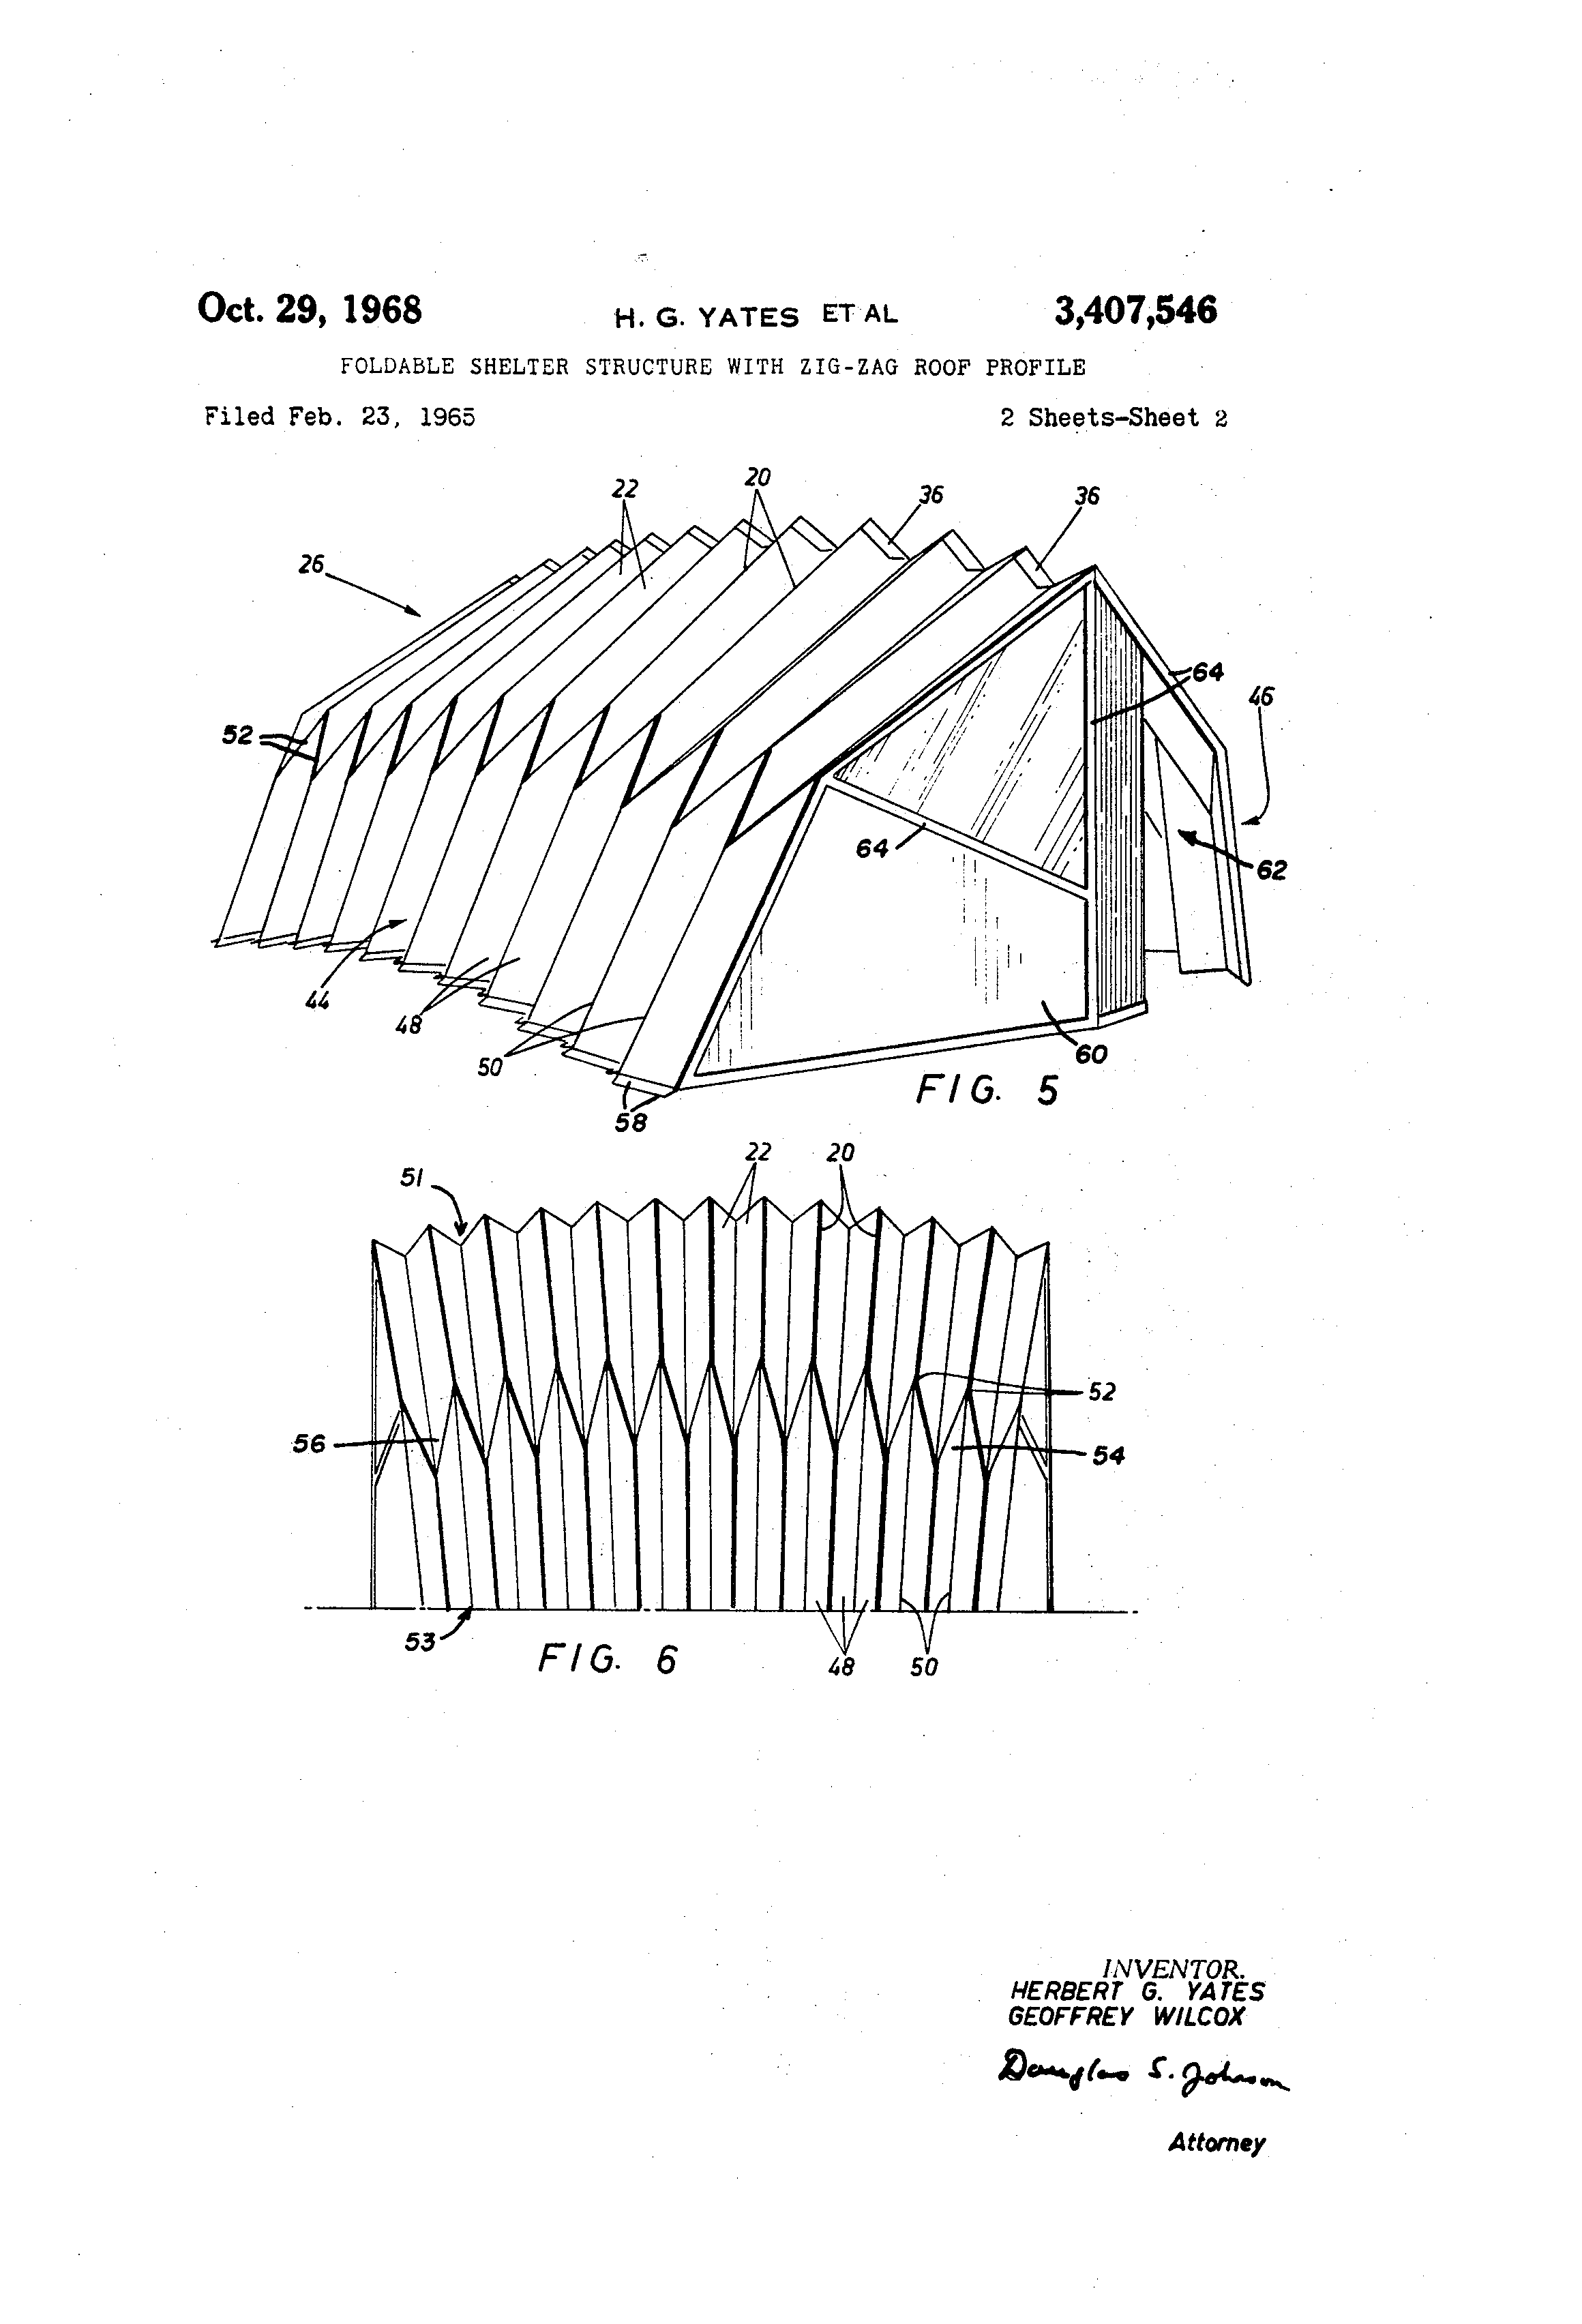 foldable shelter structure with zig